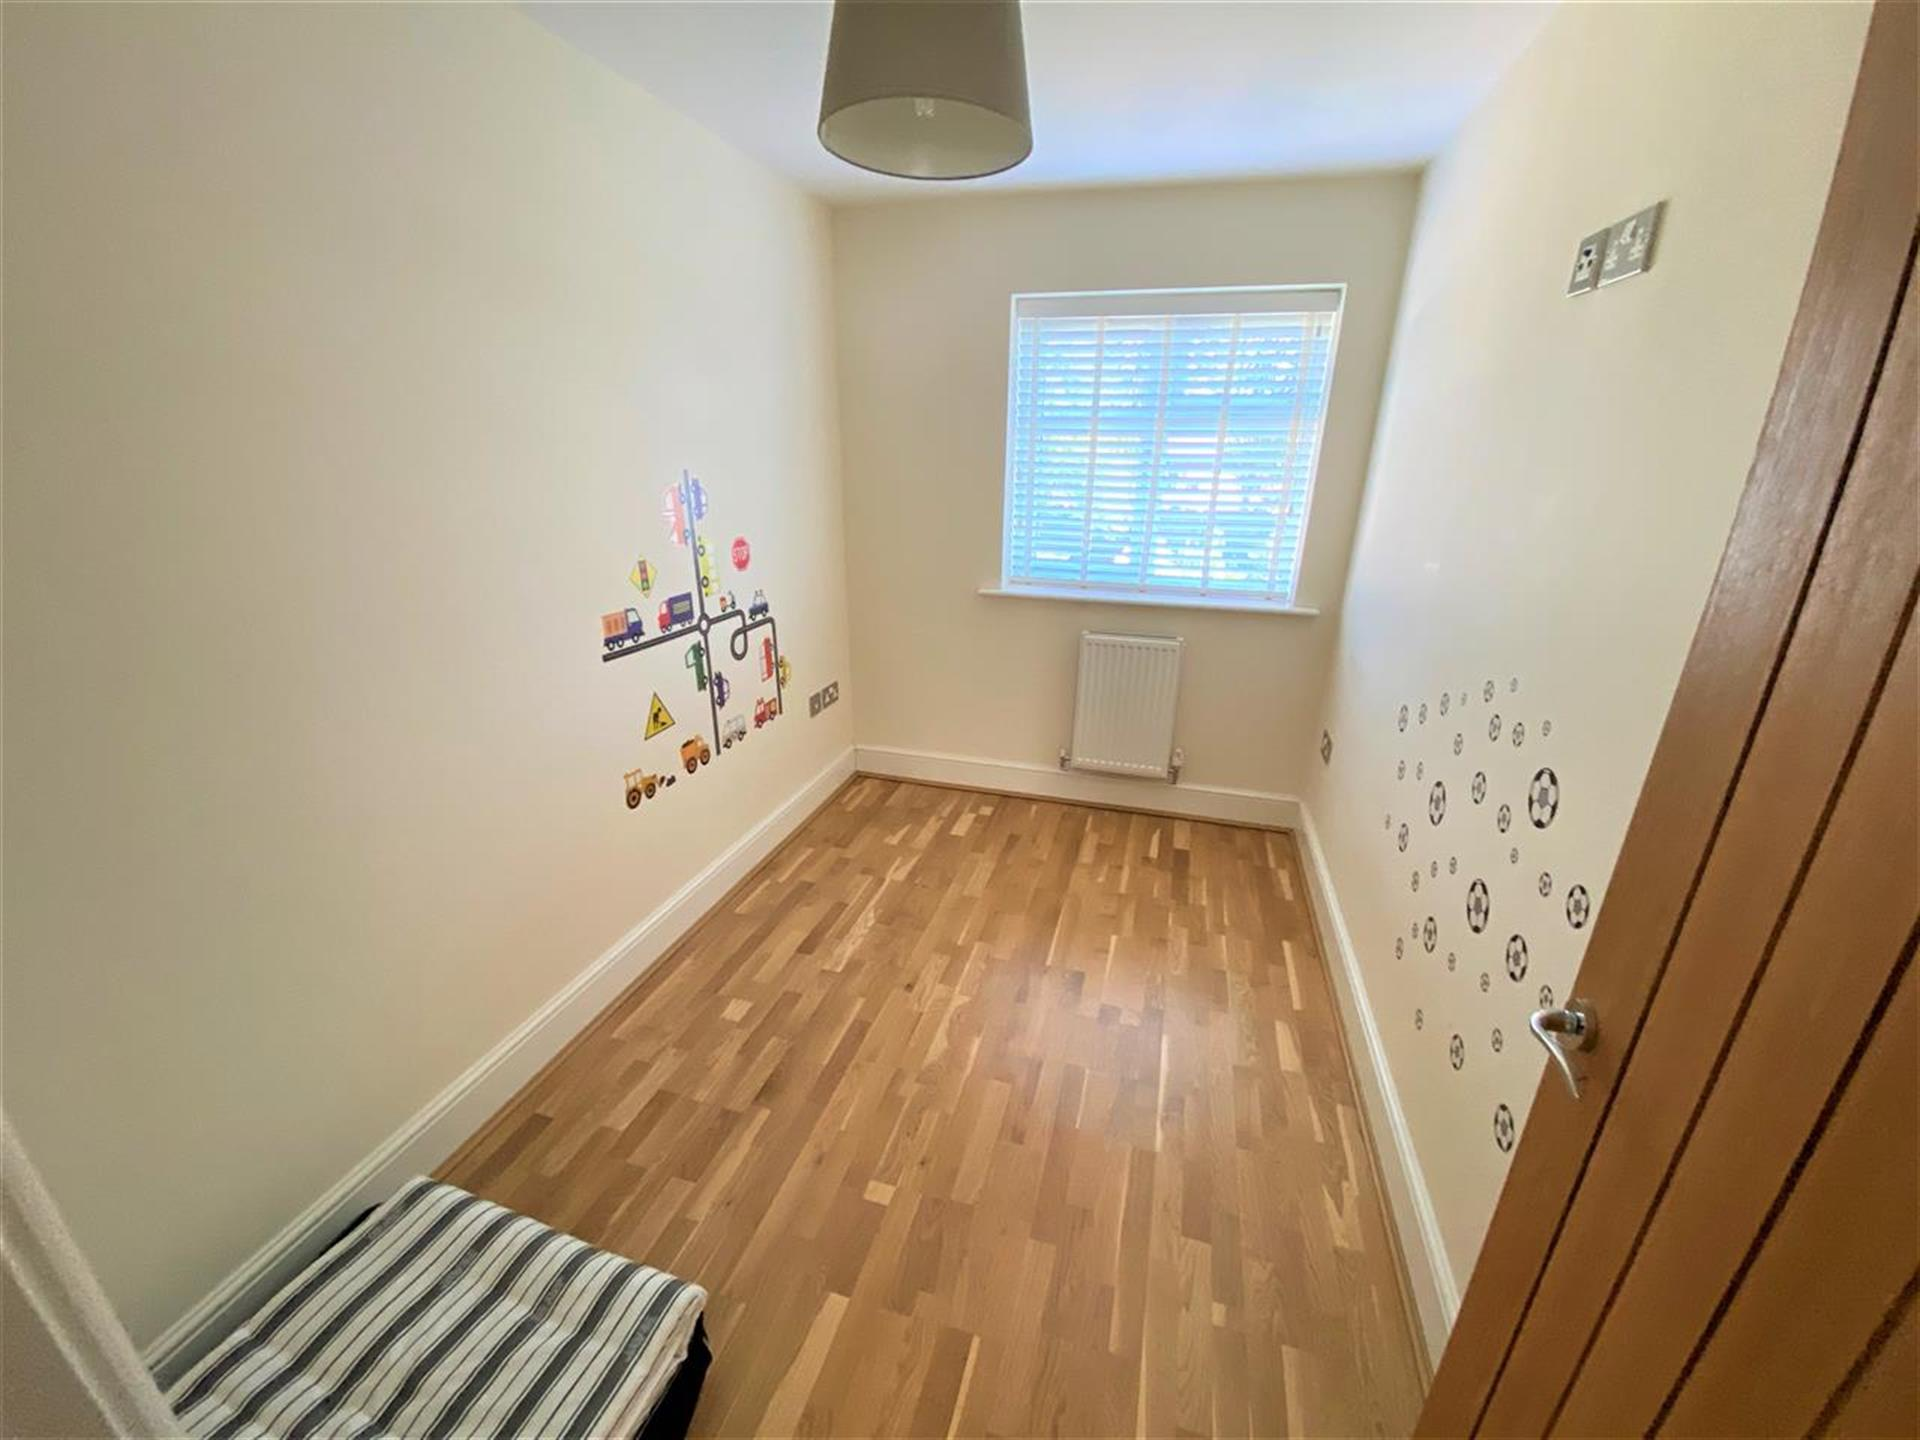 4 Bedroom Semi-detached House For Sale - Bedroom Three